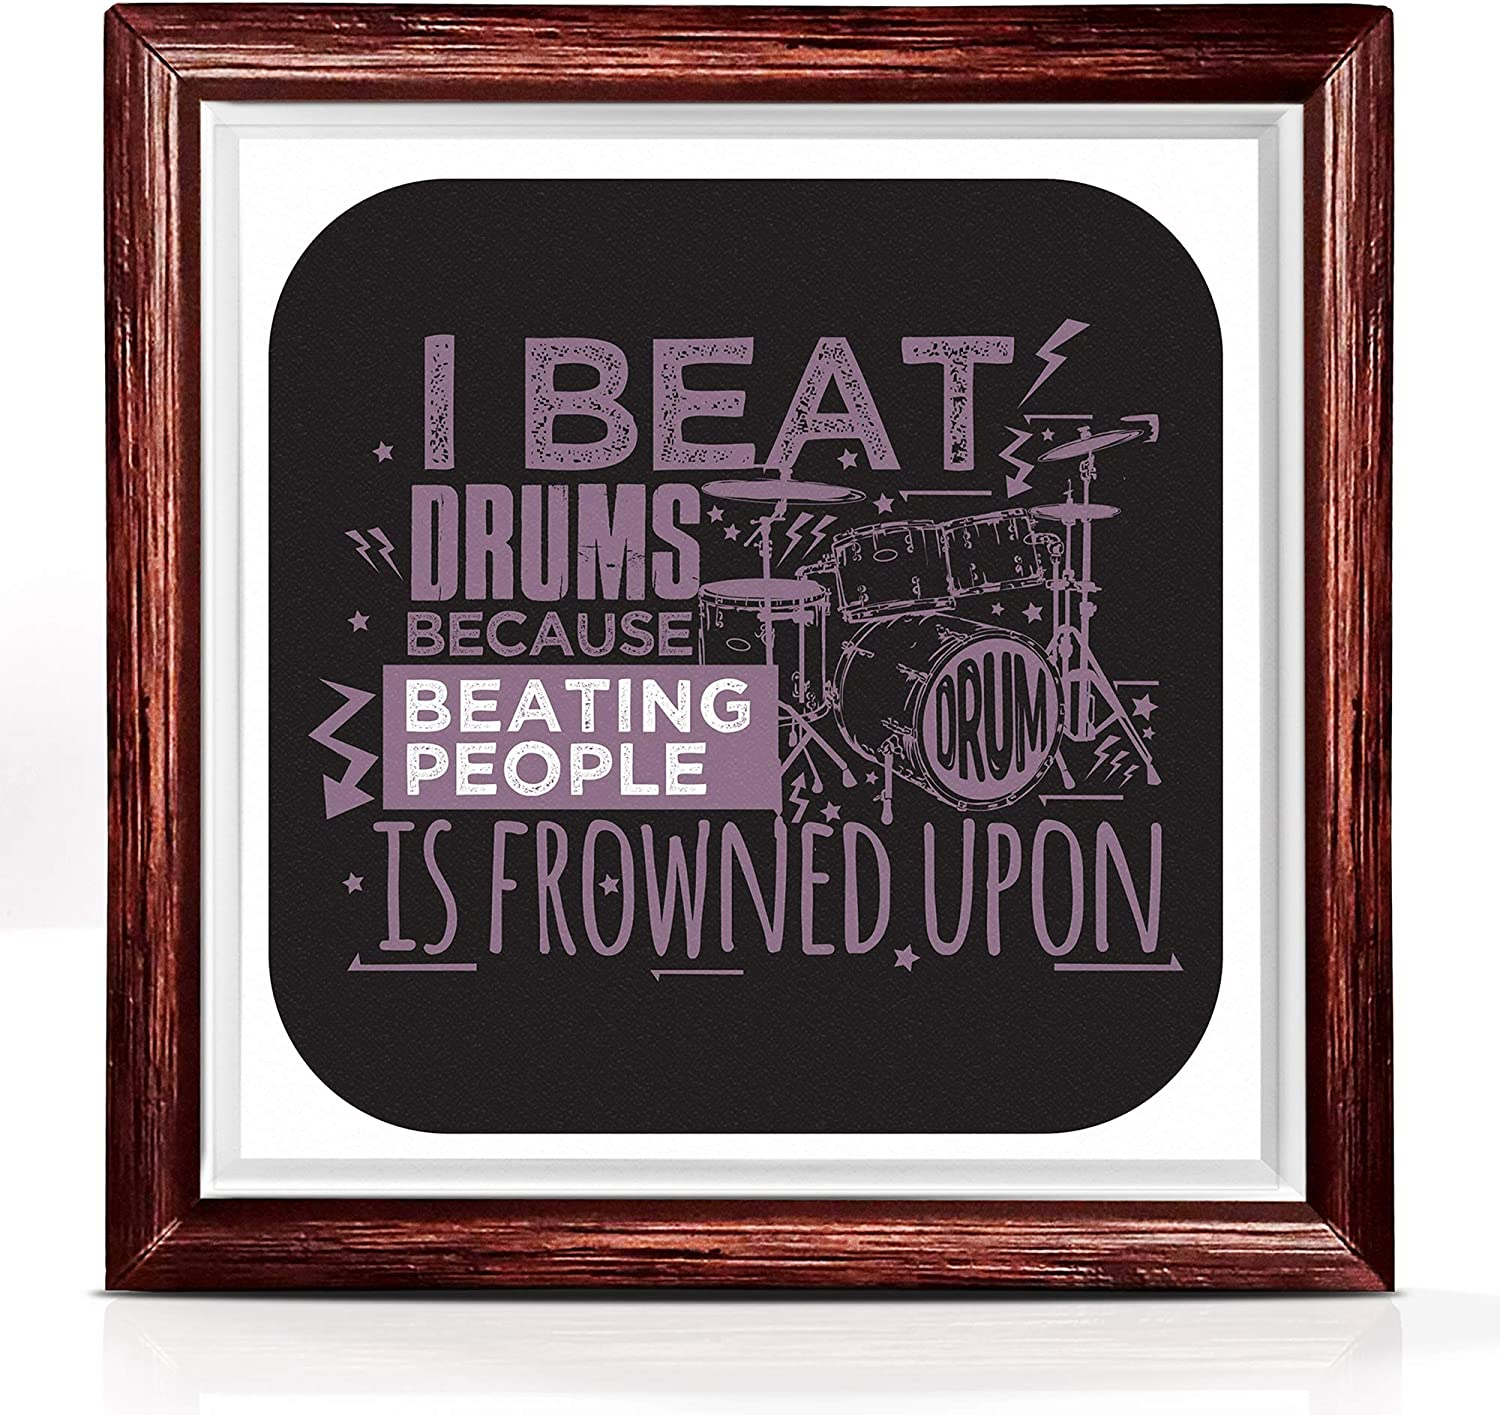 Drummer Gifts   Music Gifts for Drummers   Original Wall Art Music Gift for Musician   Ideal Drum Set Accessories for Music Studio Decor   Funny Music Teacher Gifts